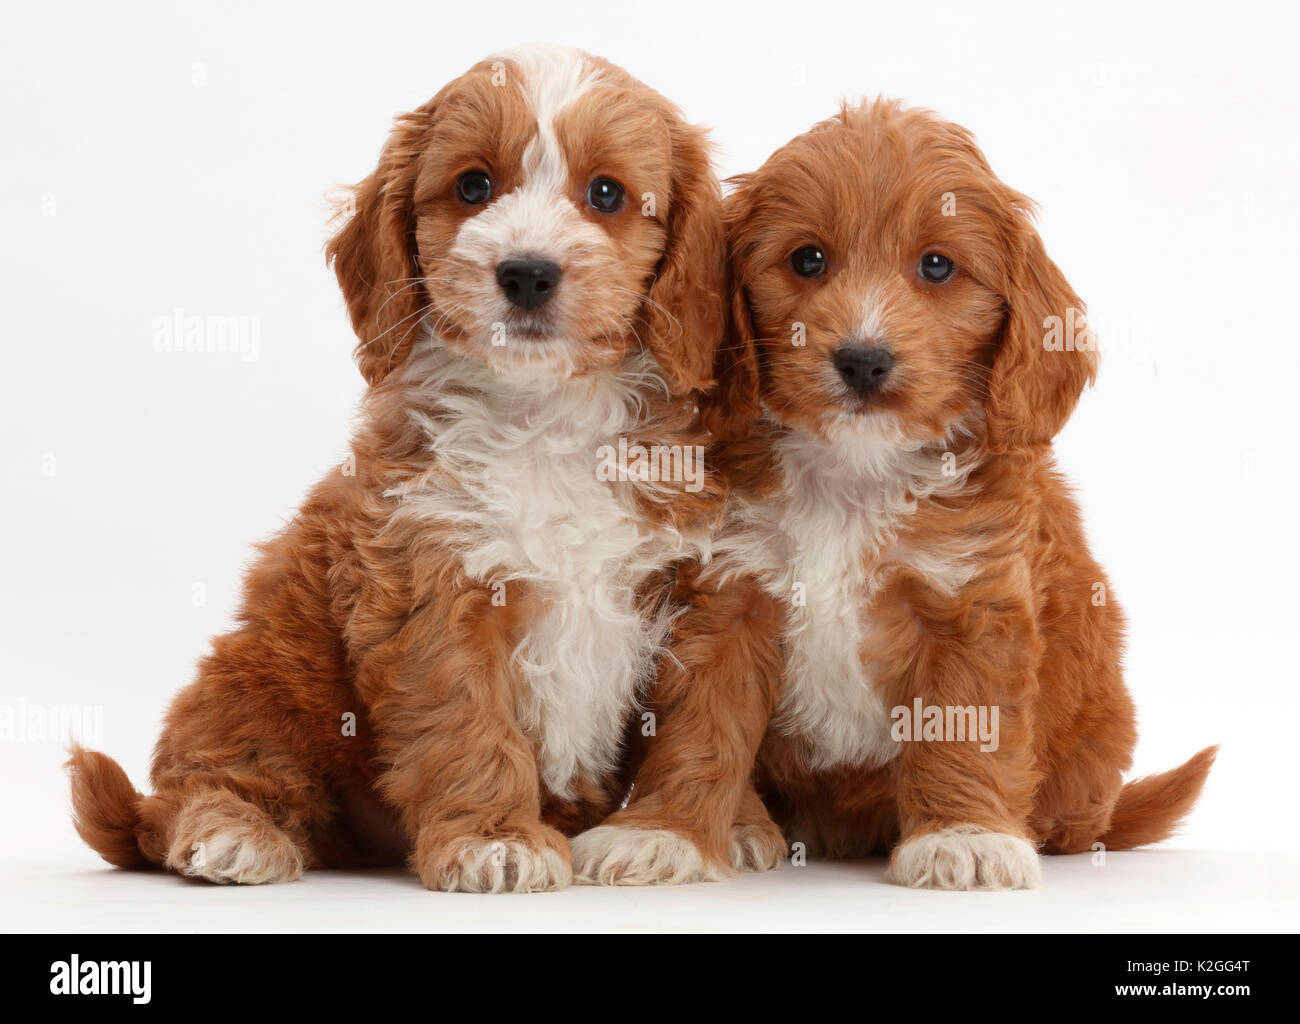 Two Red Toy Cockapoo Puppies Stock Photo Alamy